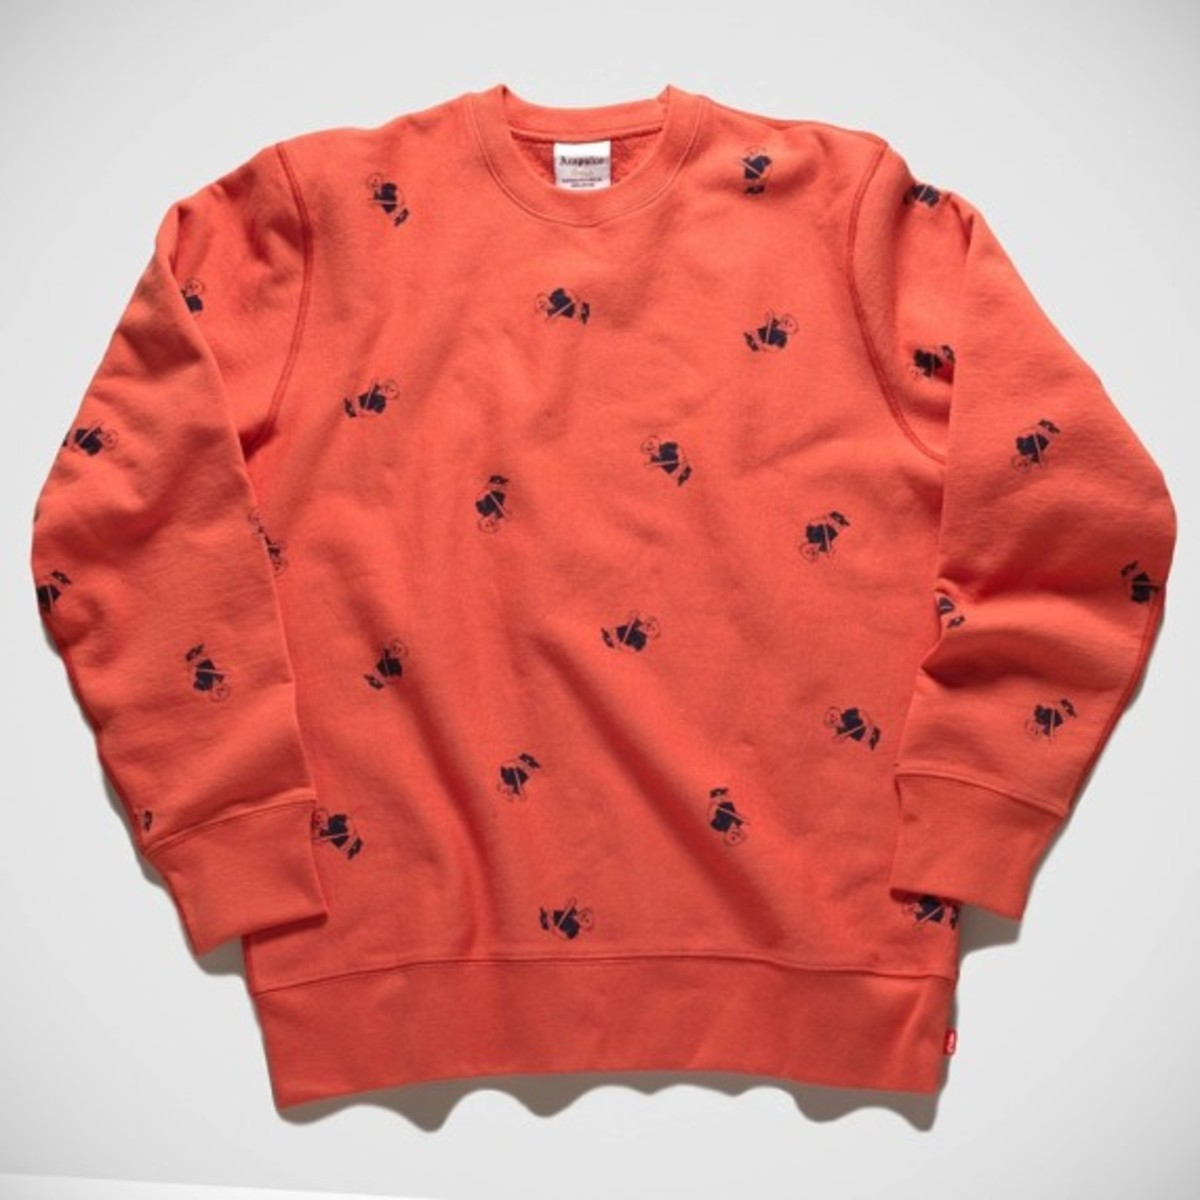 acapulco-gold-spring-2014-collection-delivery-1-13